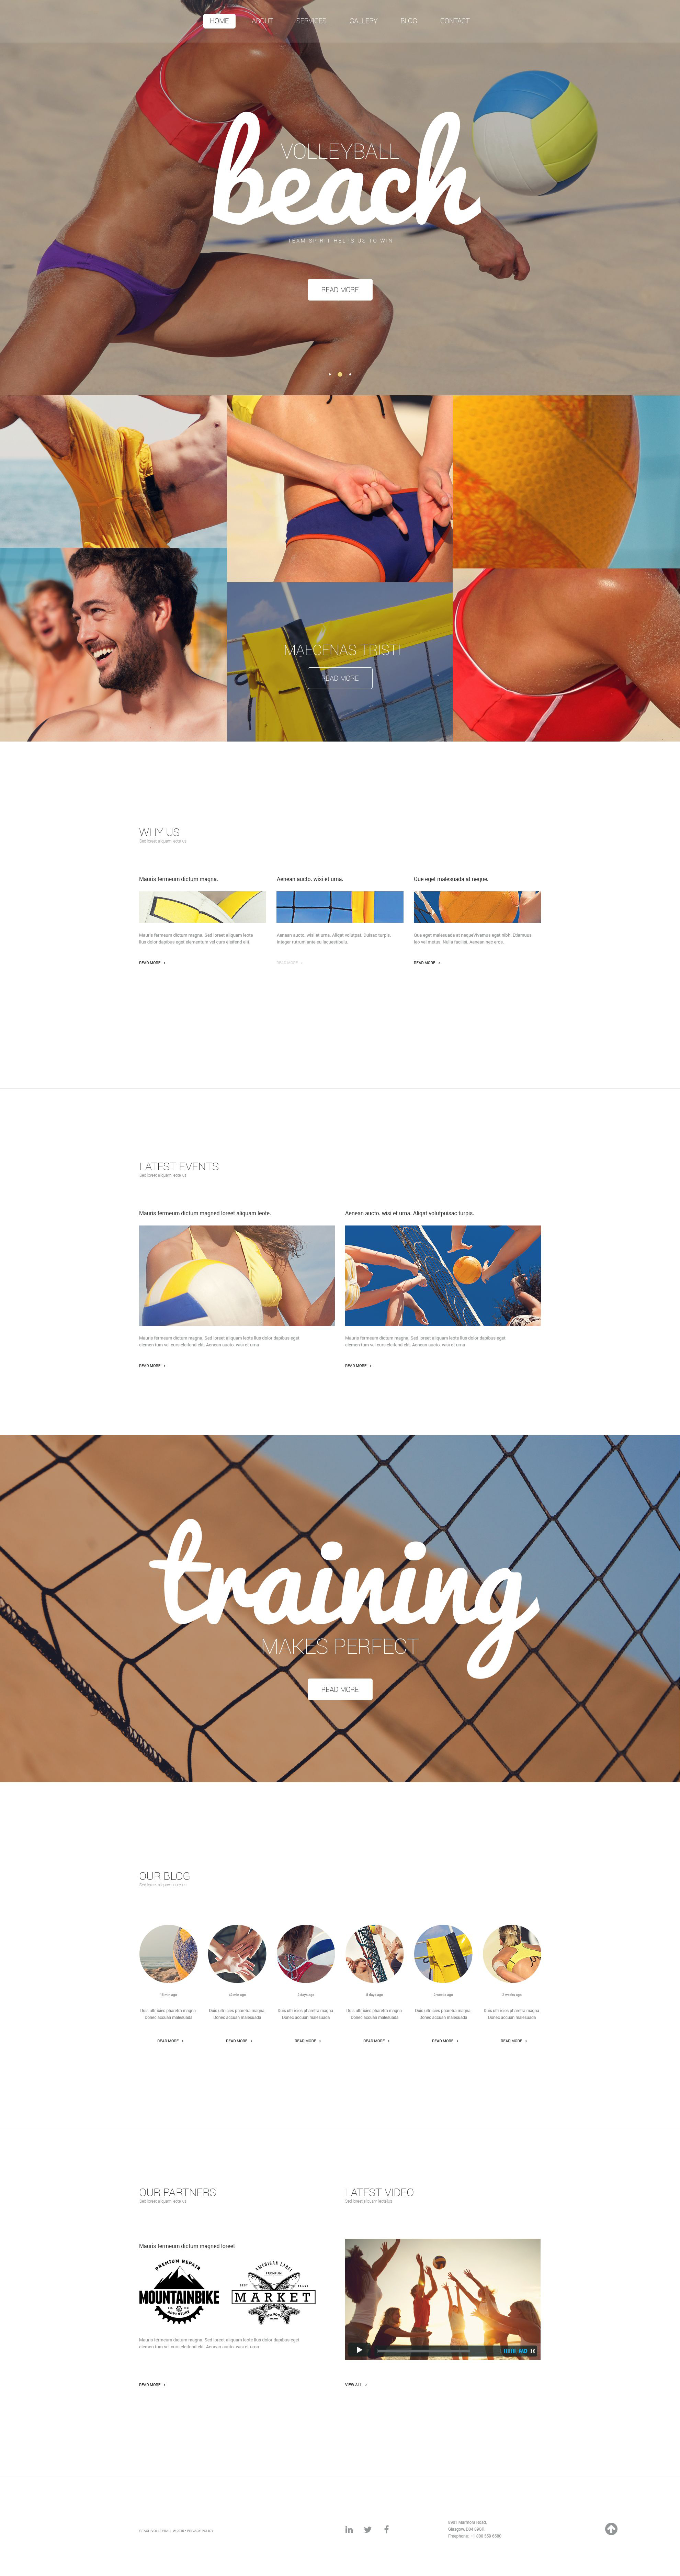 Responsivt Beach Volleyball Club WordPress-tema #54788